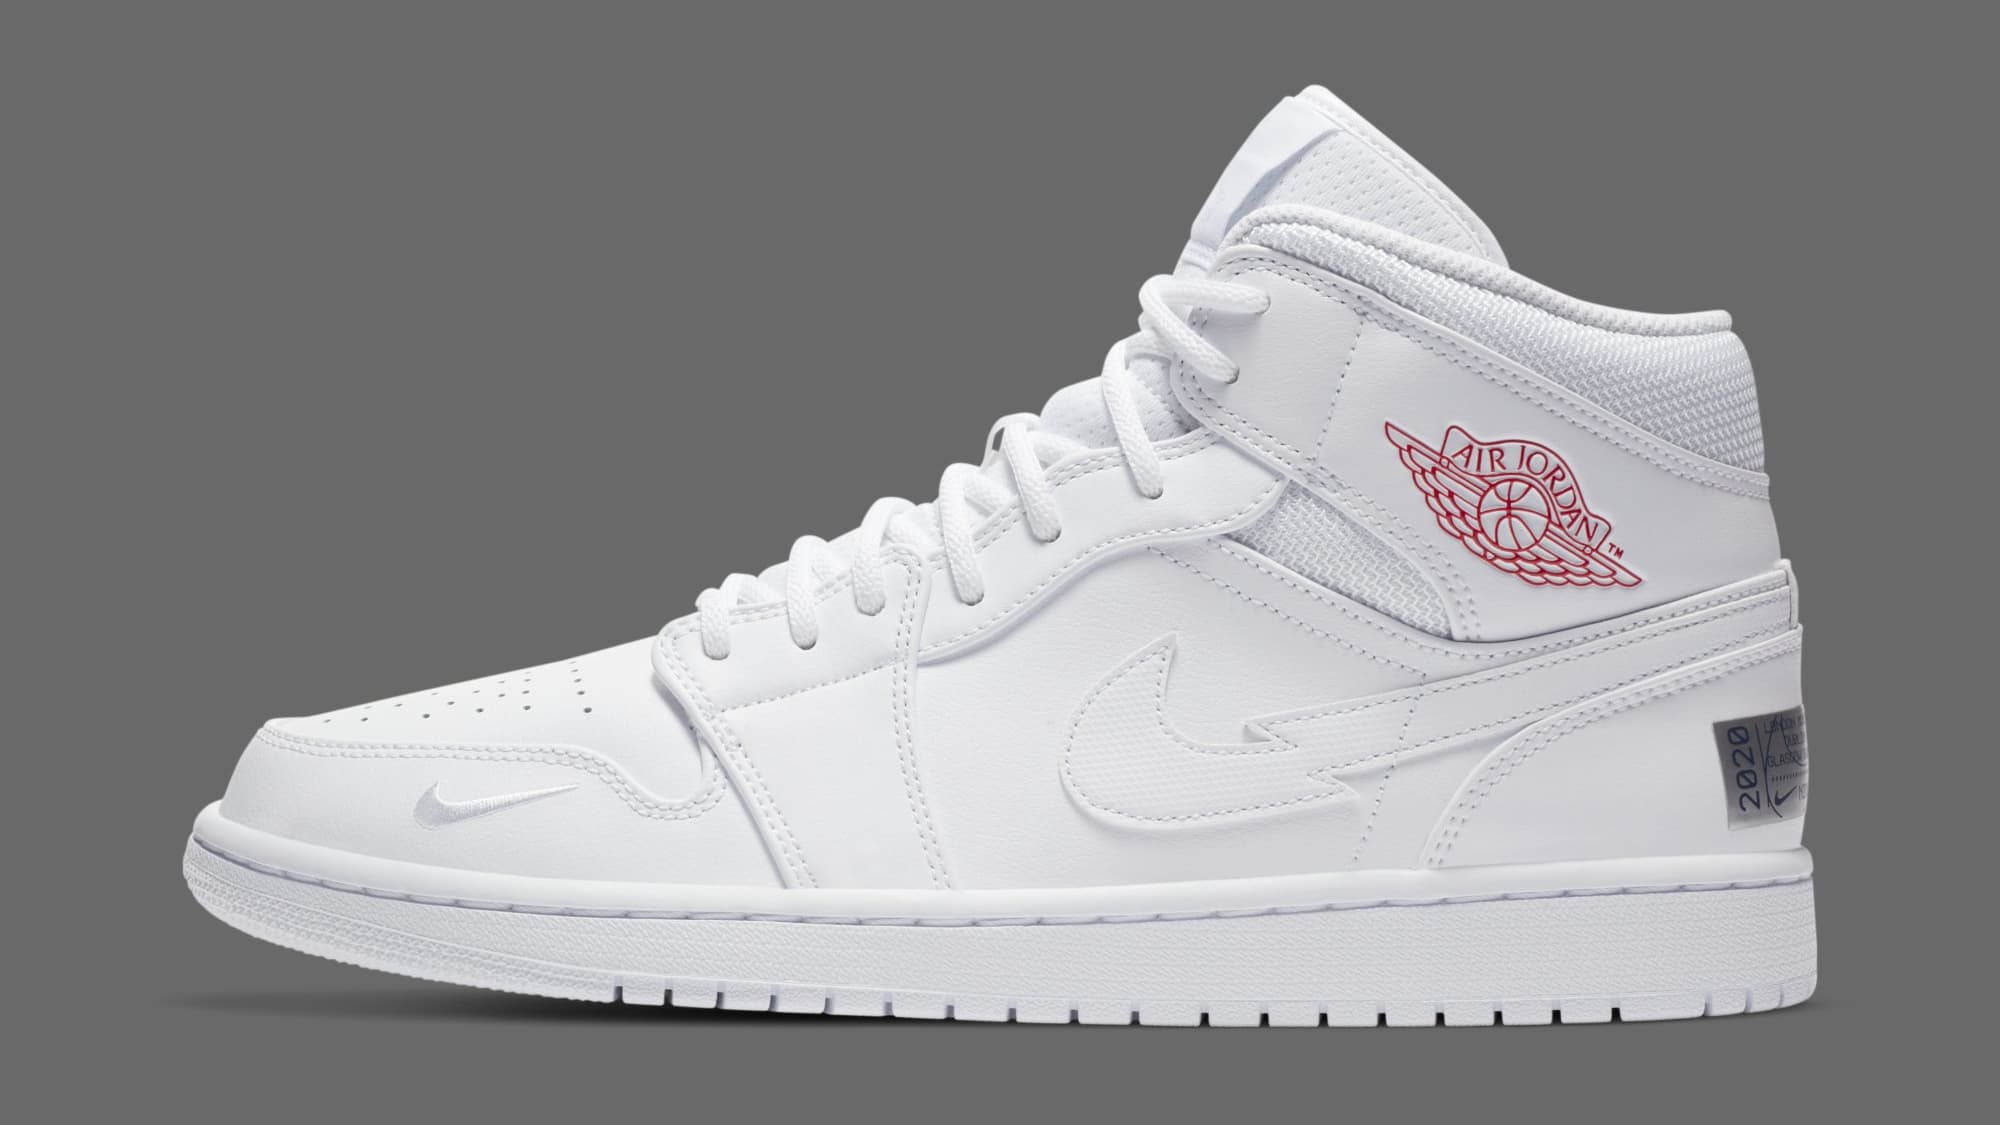 Air Jordan 1 Retro Mid 'Euro Tour' CW7589-100 Lateral